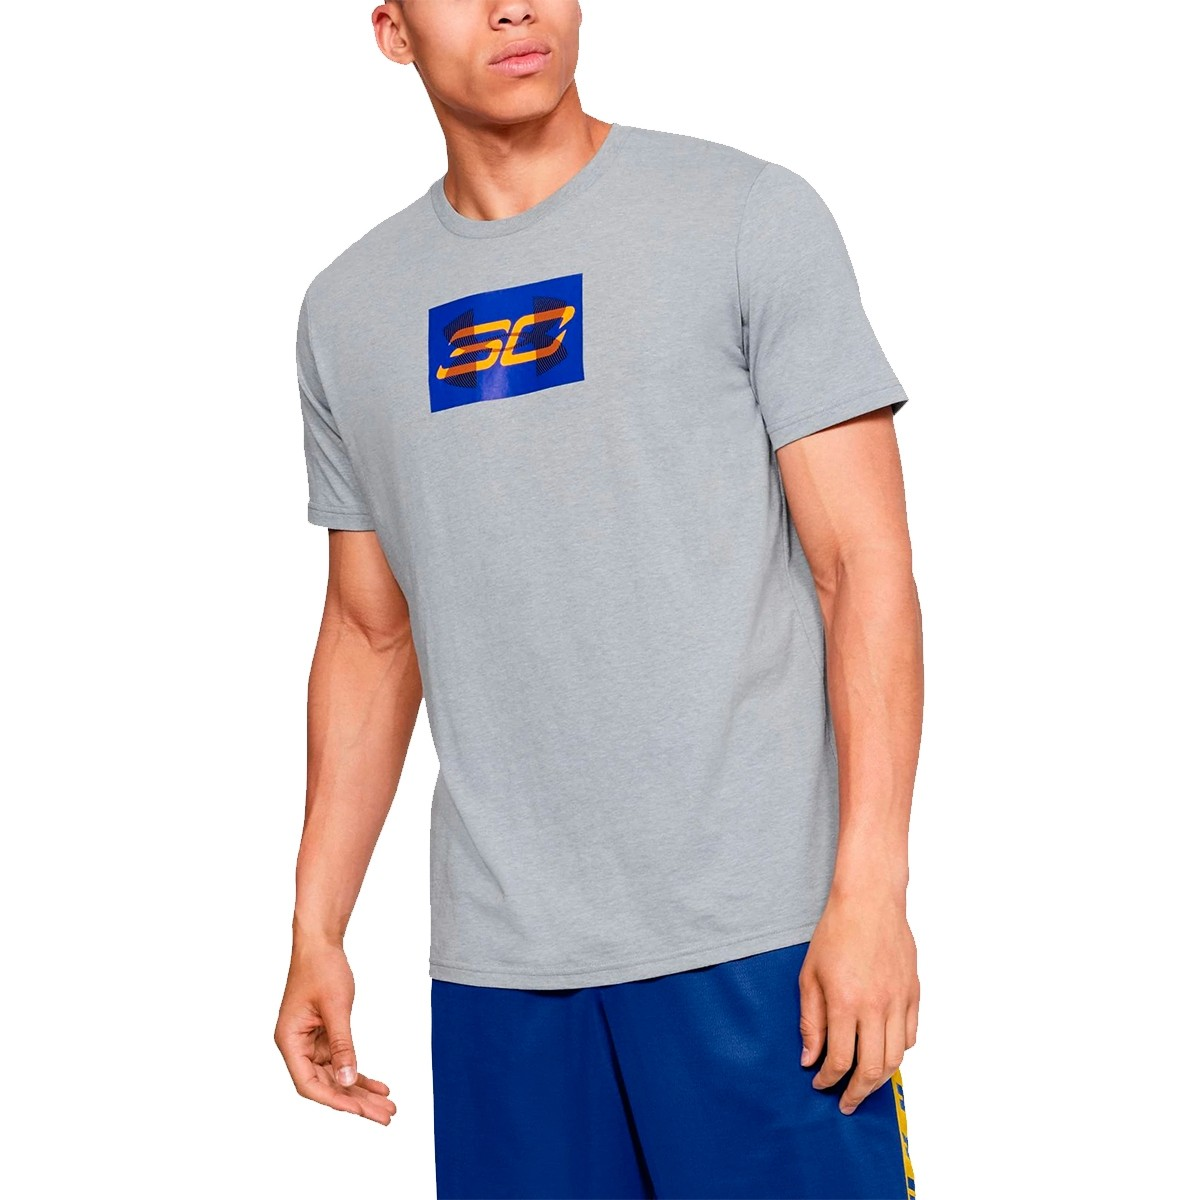 UA SC30 Overlay Short Sleeve T-Shirt 'Royal'